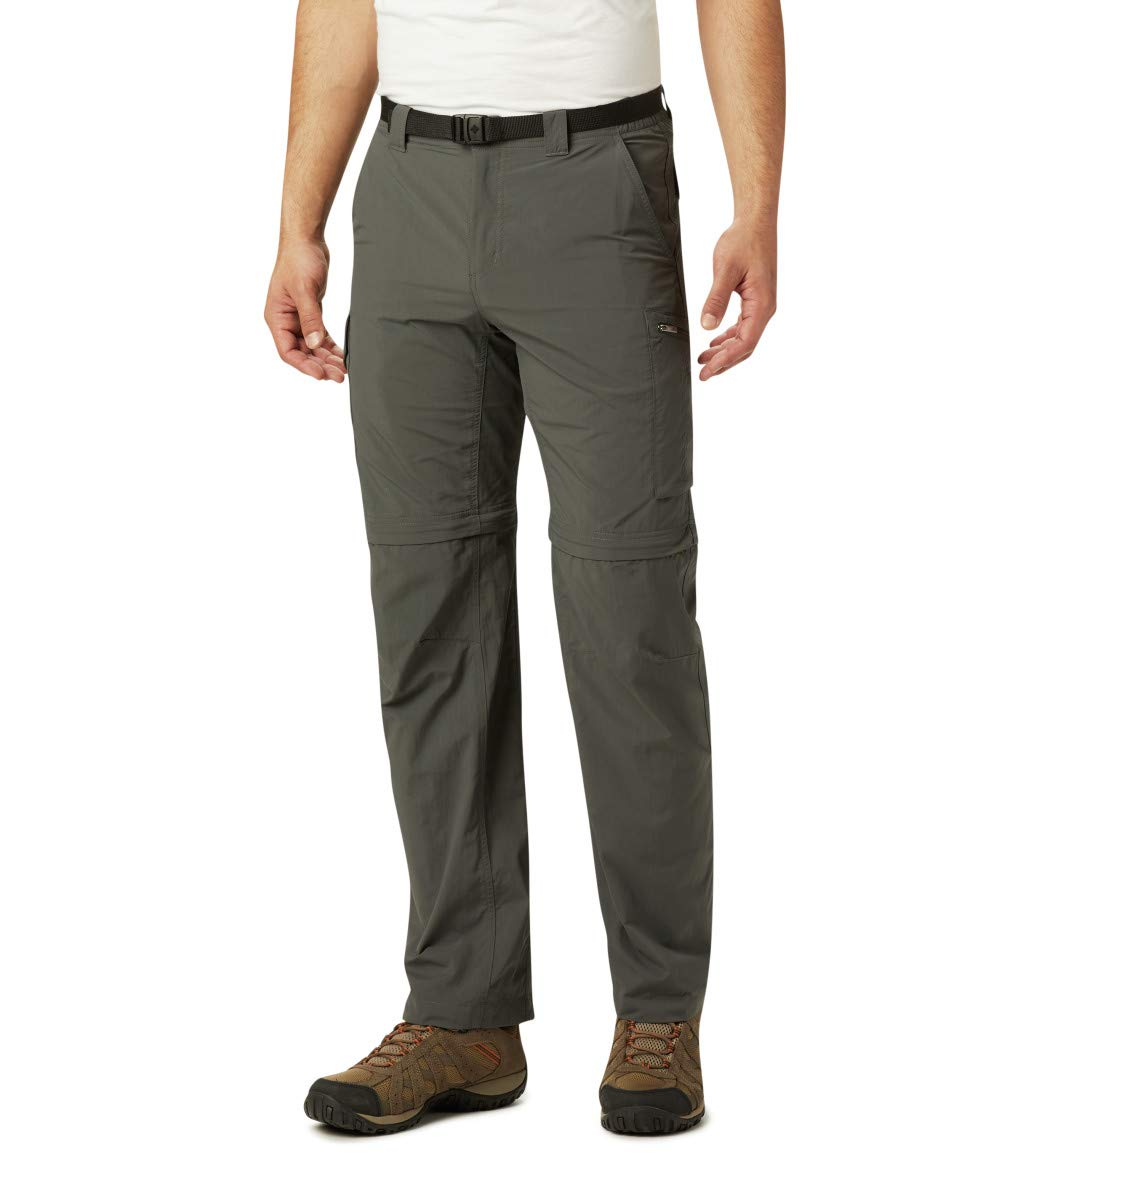 Columbia Men's Silver Ridge Convertible Pant, Breathable, UPF 50 Sun Protection, Gravel, 42x36 by Columbia